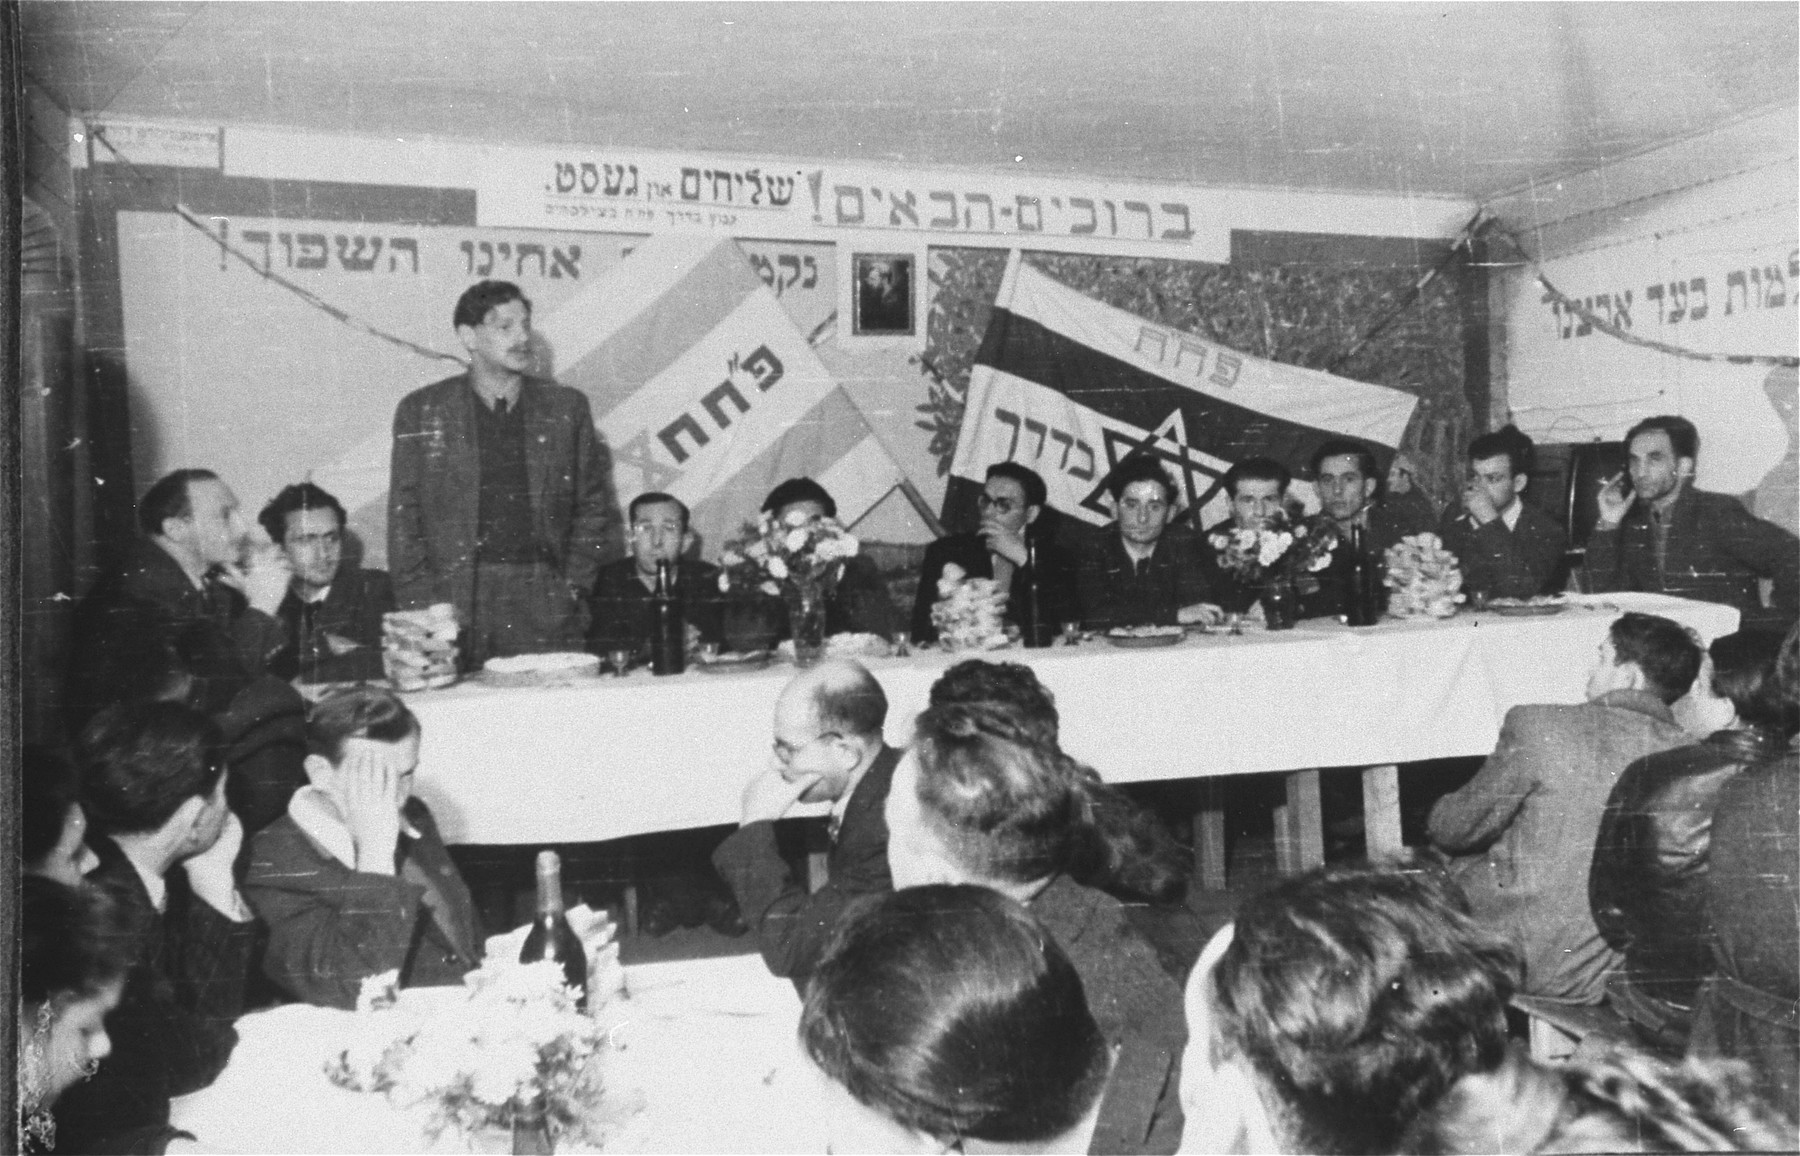 Yitzhak Zuckerman delivers a speech at a Zionist political meeting in the Zeilsheim displaced persons' camp.